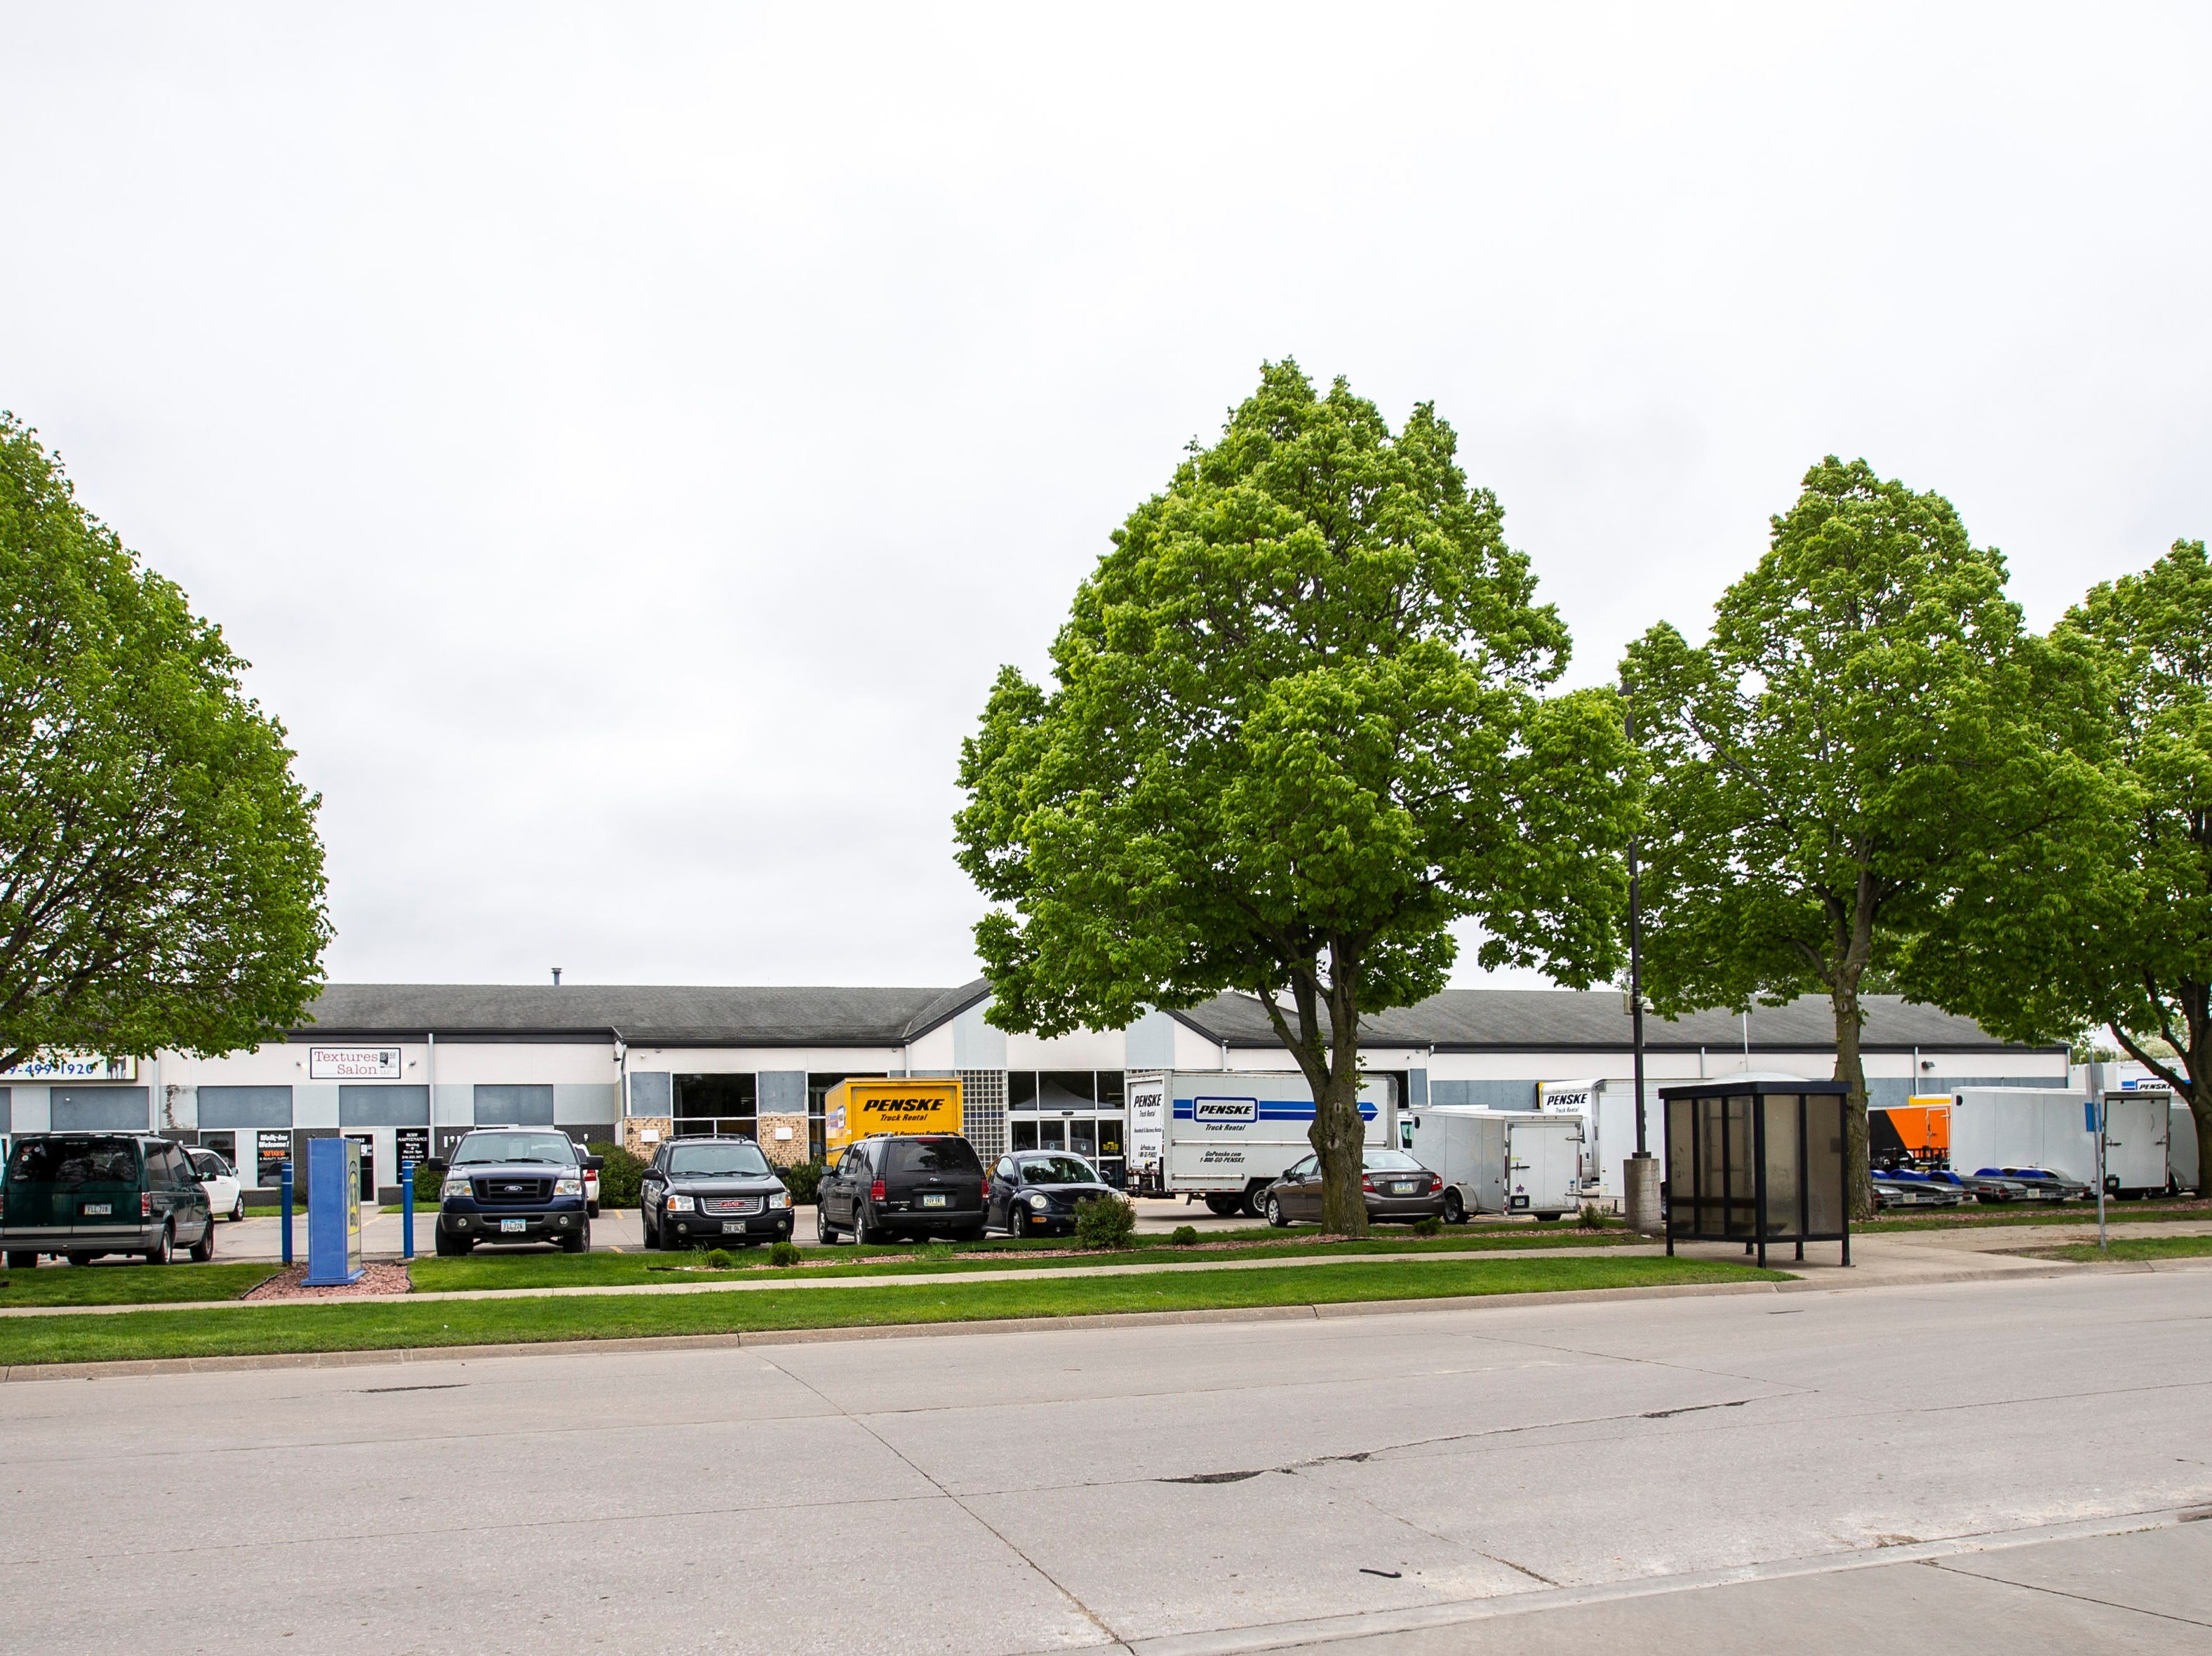 Big Ten Rentals is pictured, Thursday, May 9, 2019, at 1820 Boyrum Street, south of Highway 6 in Iowa City, Iowa.